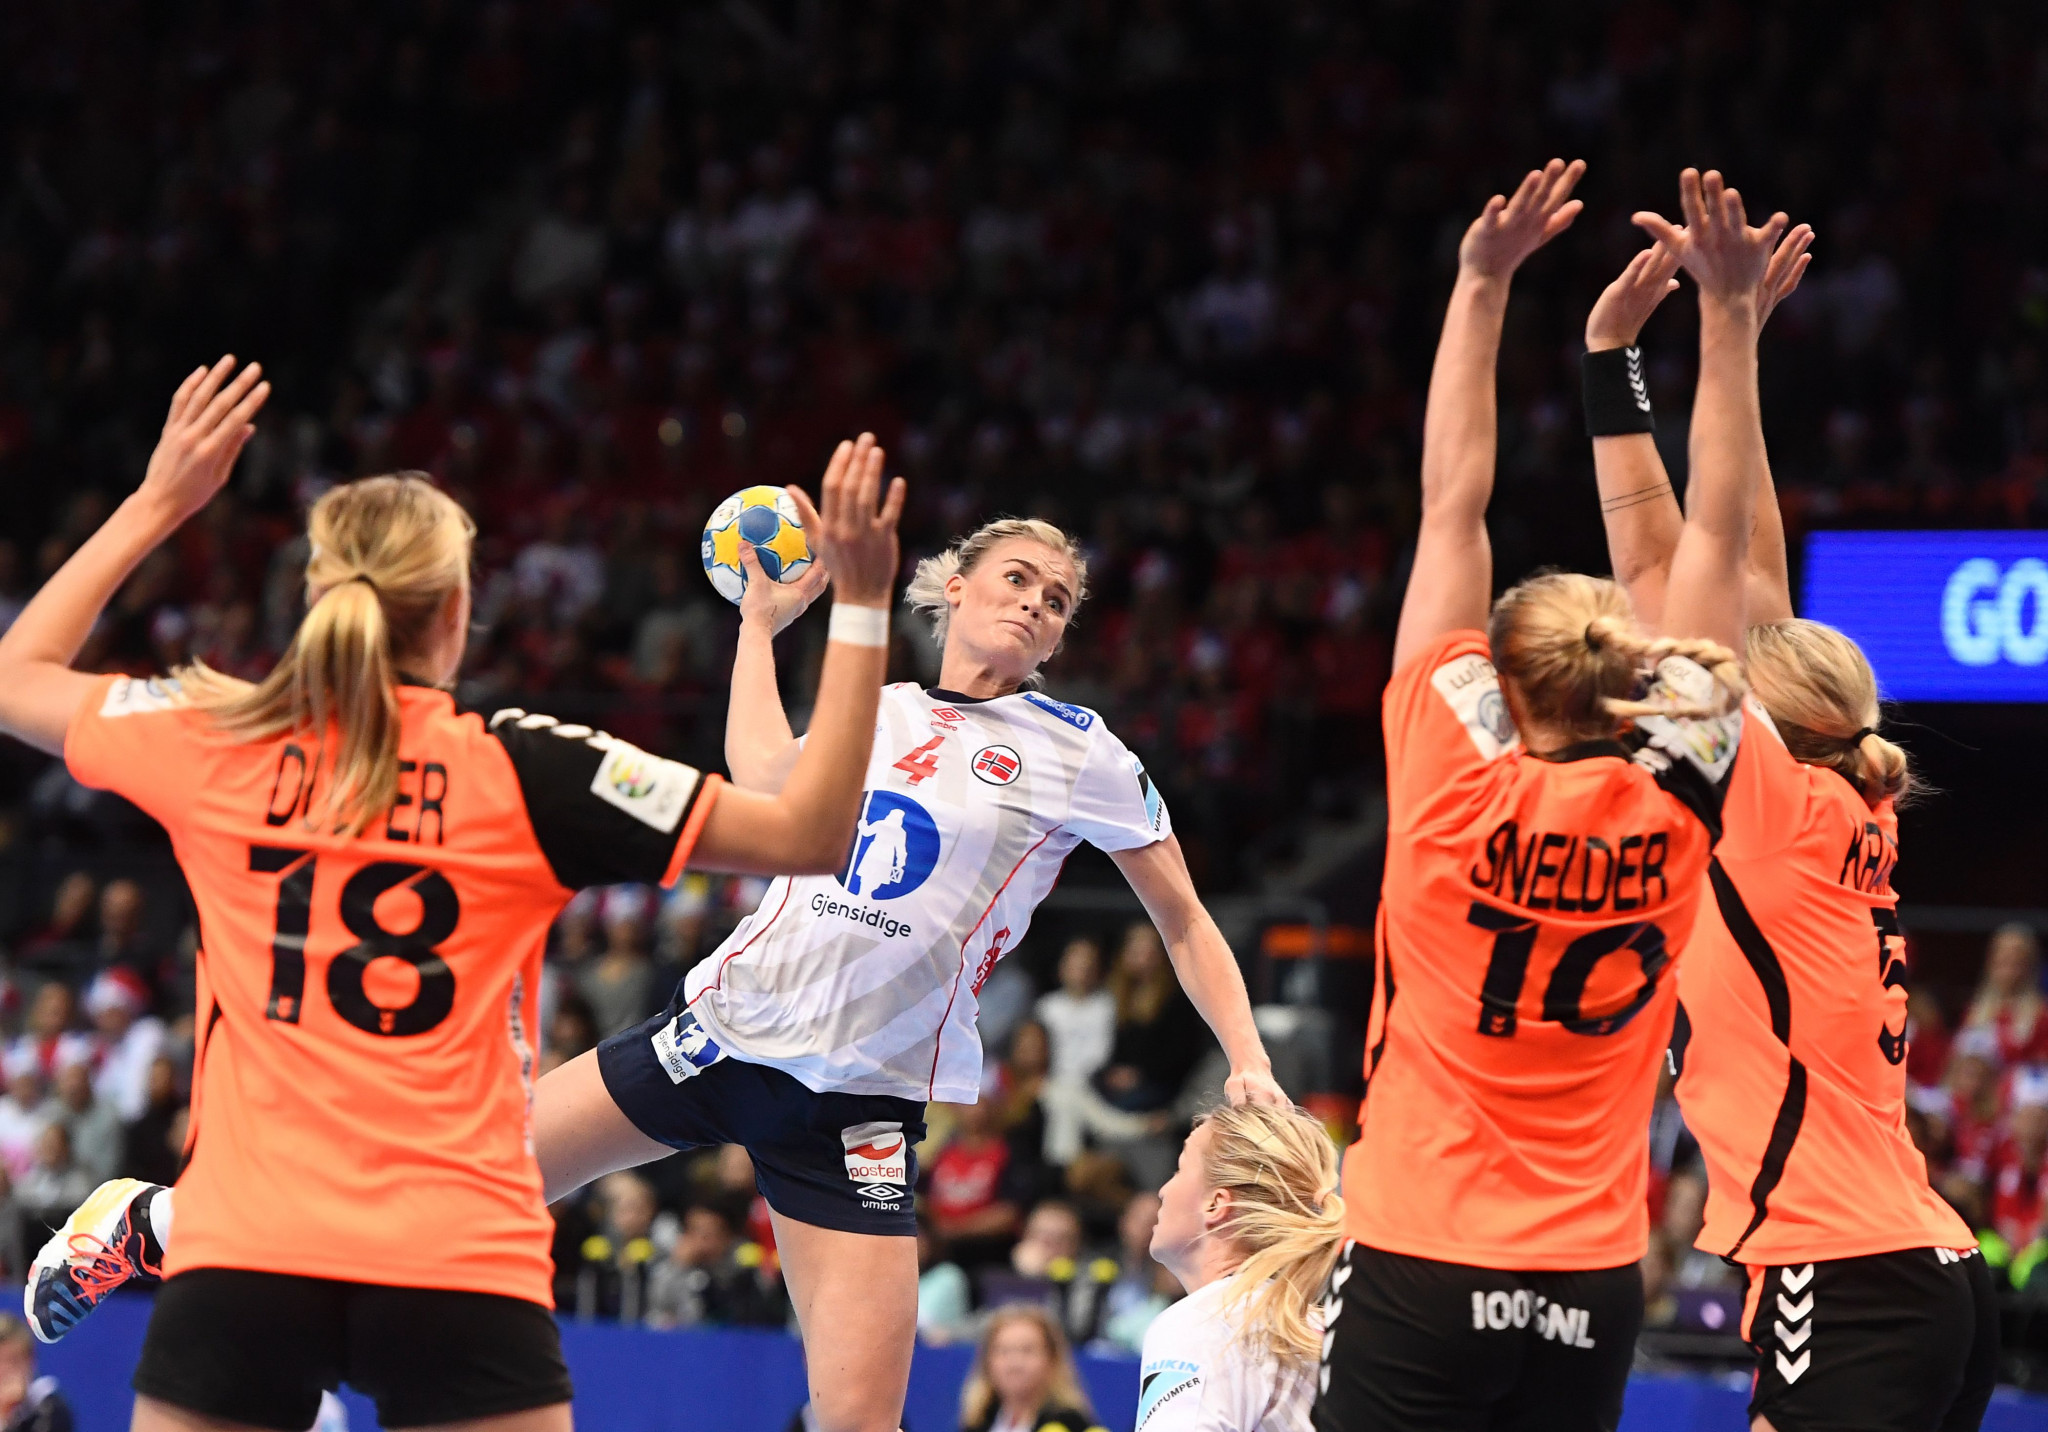 Norway out to defend title at Women's Handball World Championship